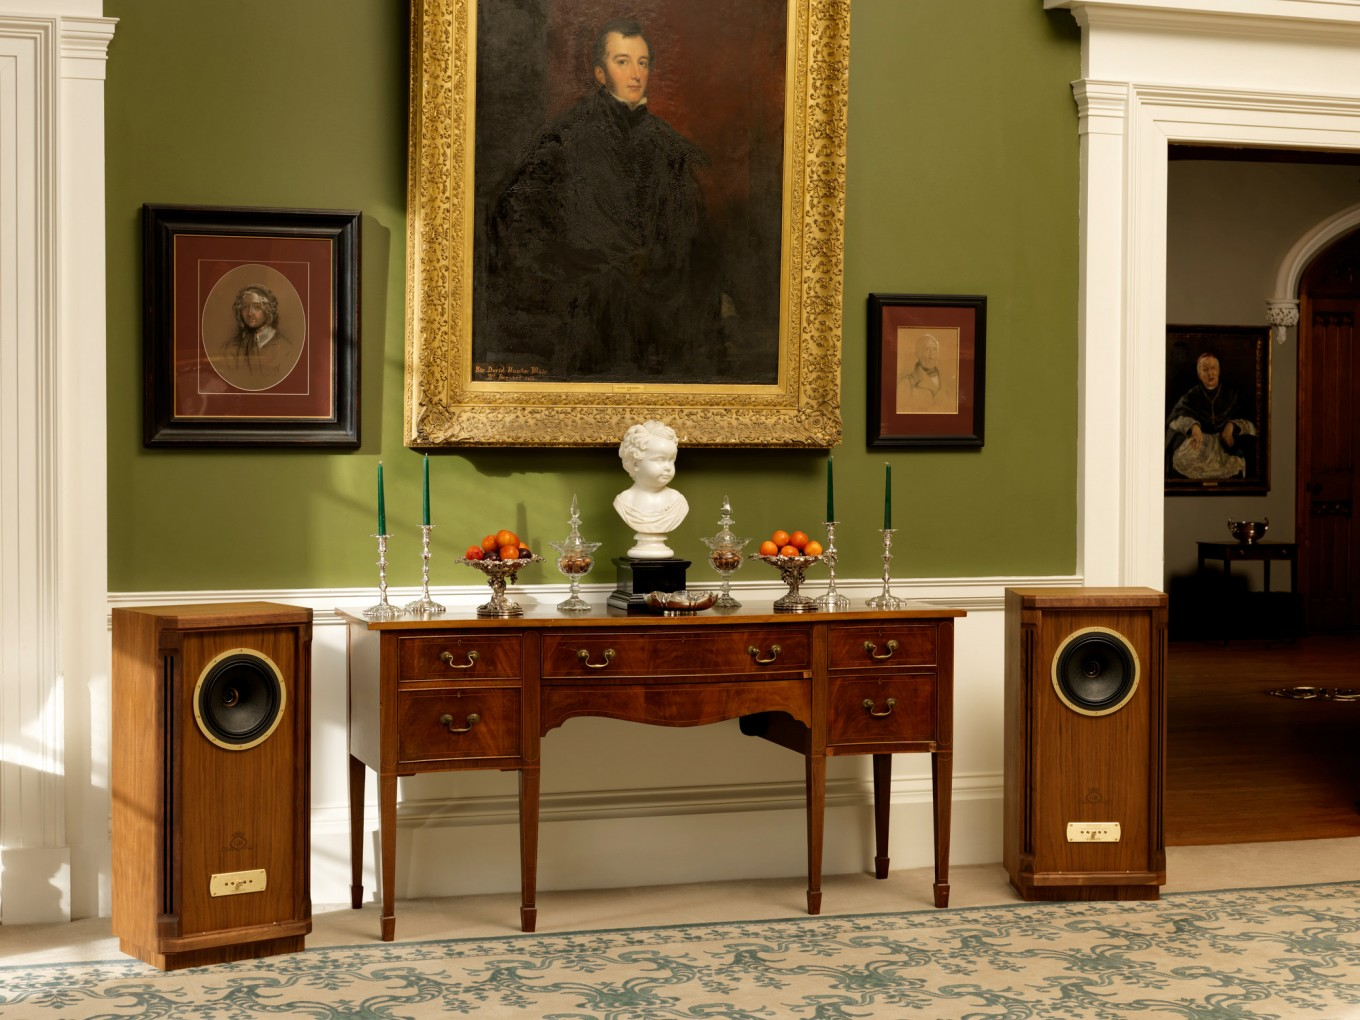 Tannoy-Turnberry-Image-1